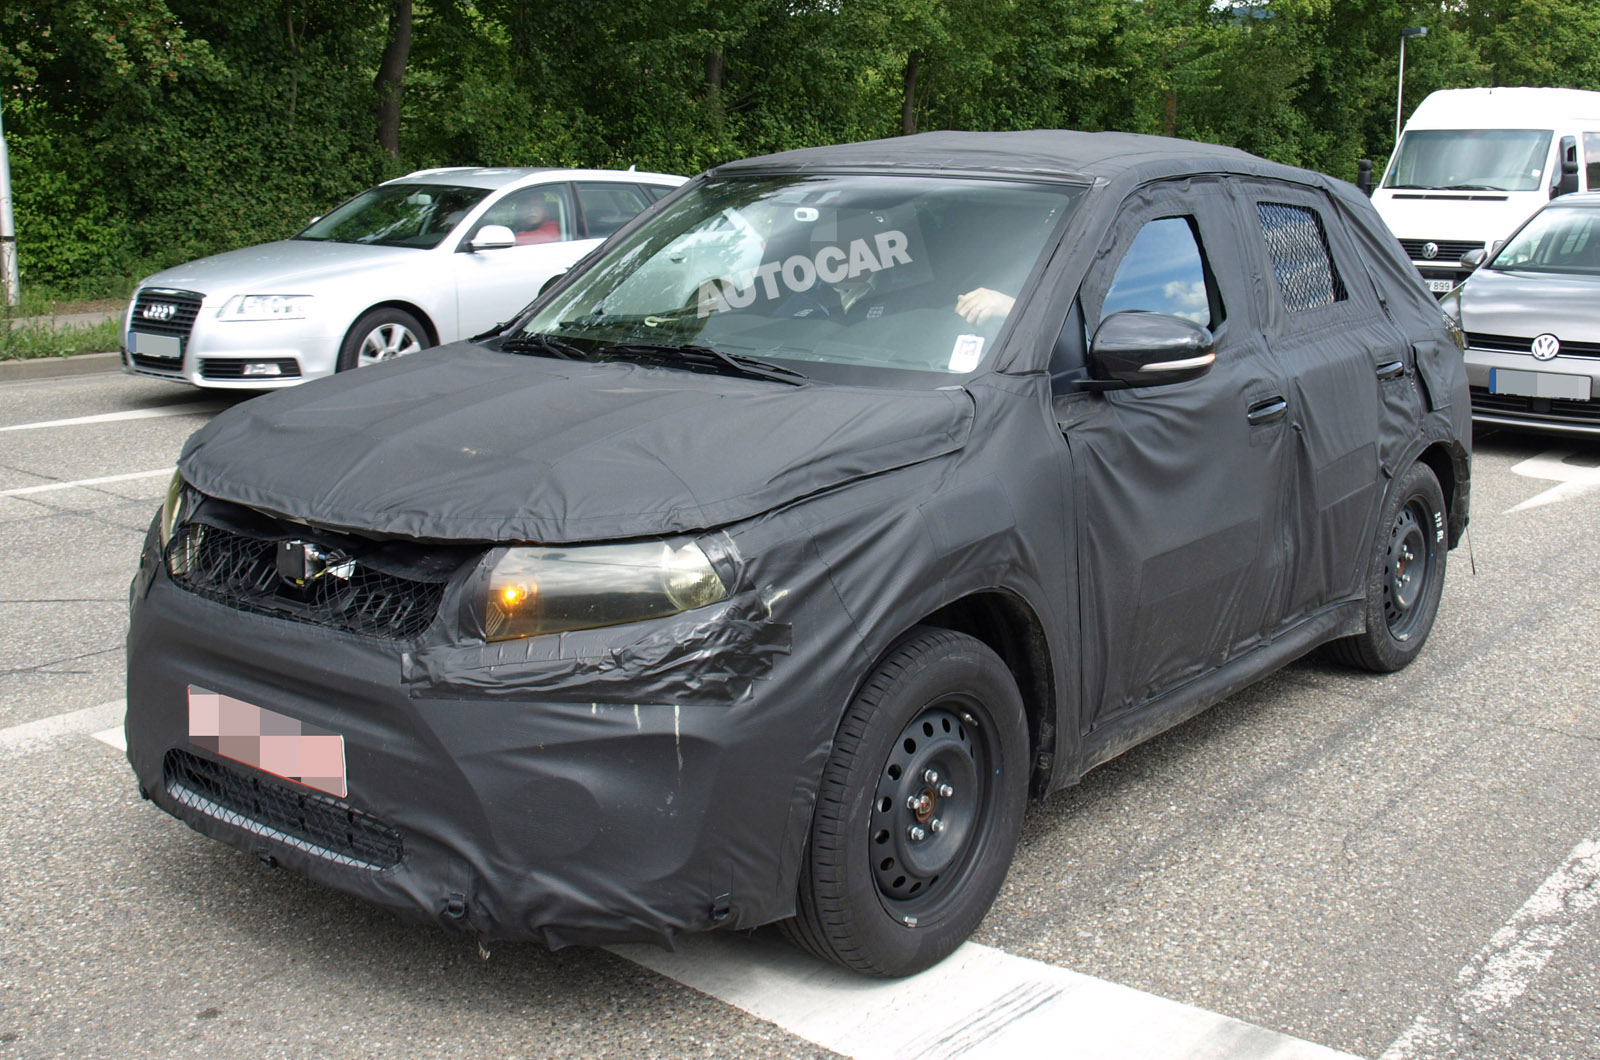 New Suzuki compact SUV spotted testing ahead of year-end ...